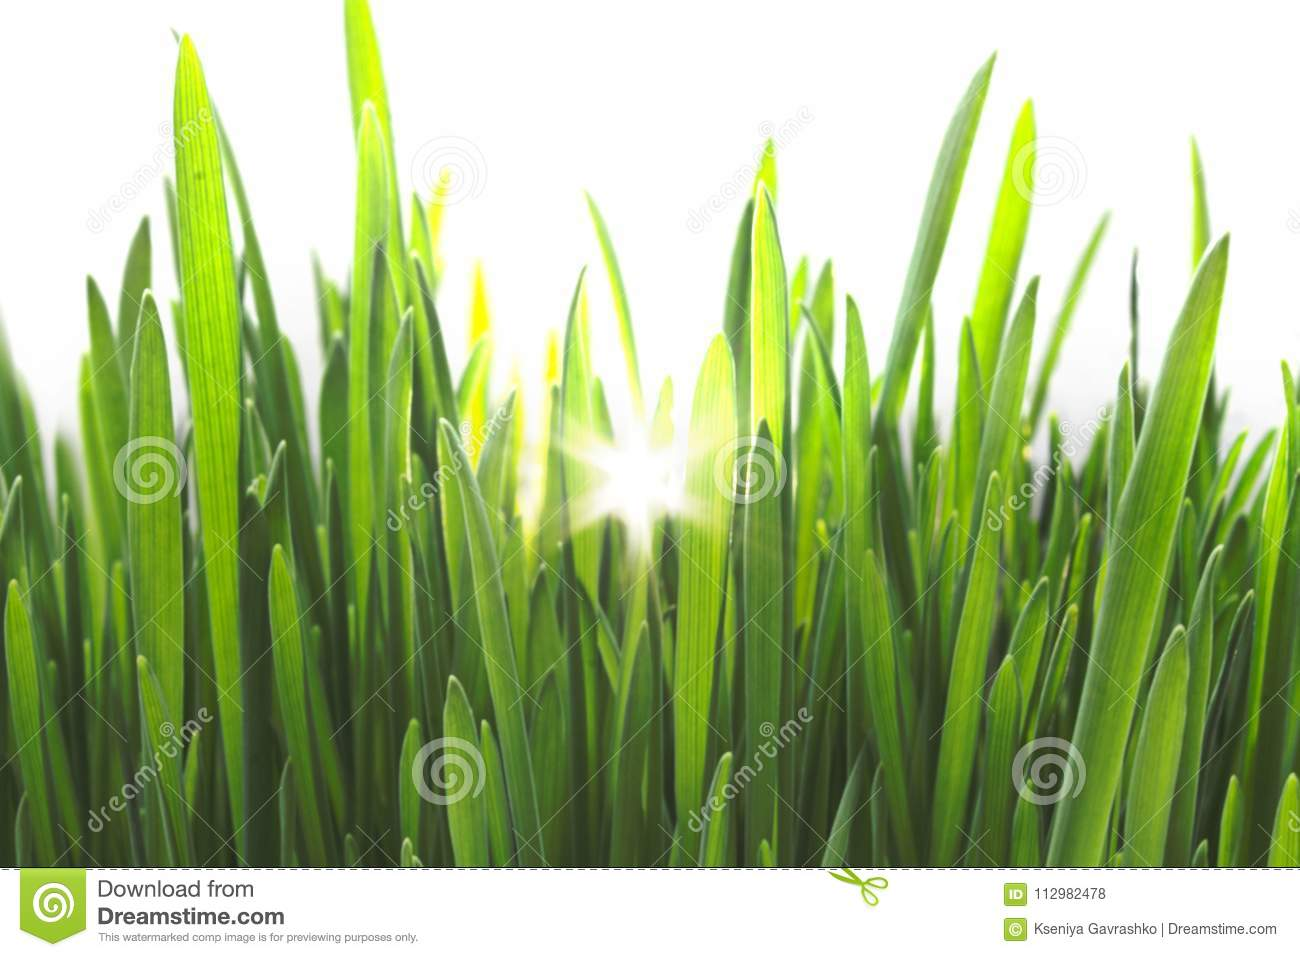 Bright Green Fresh Grass Isolated on White Background with Sunlight